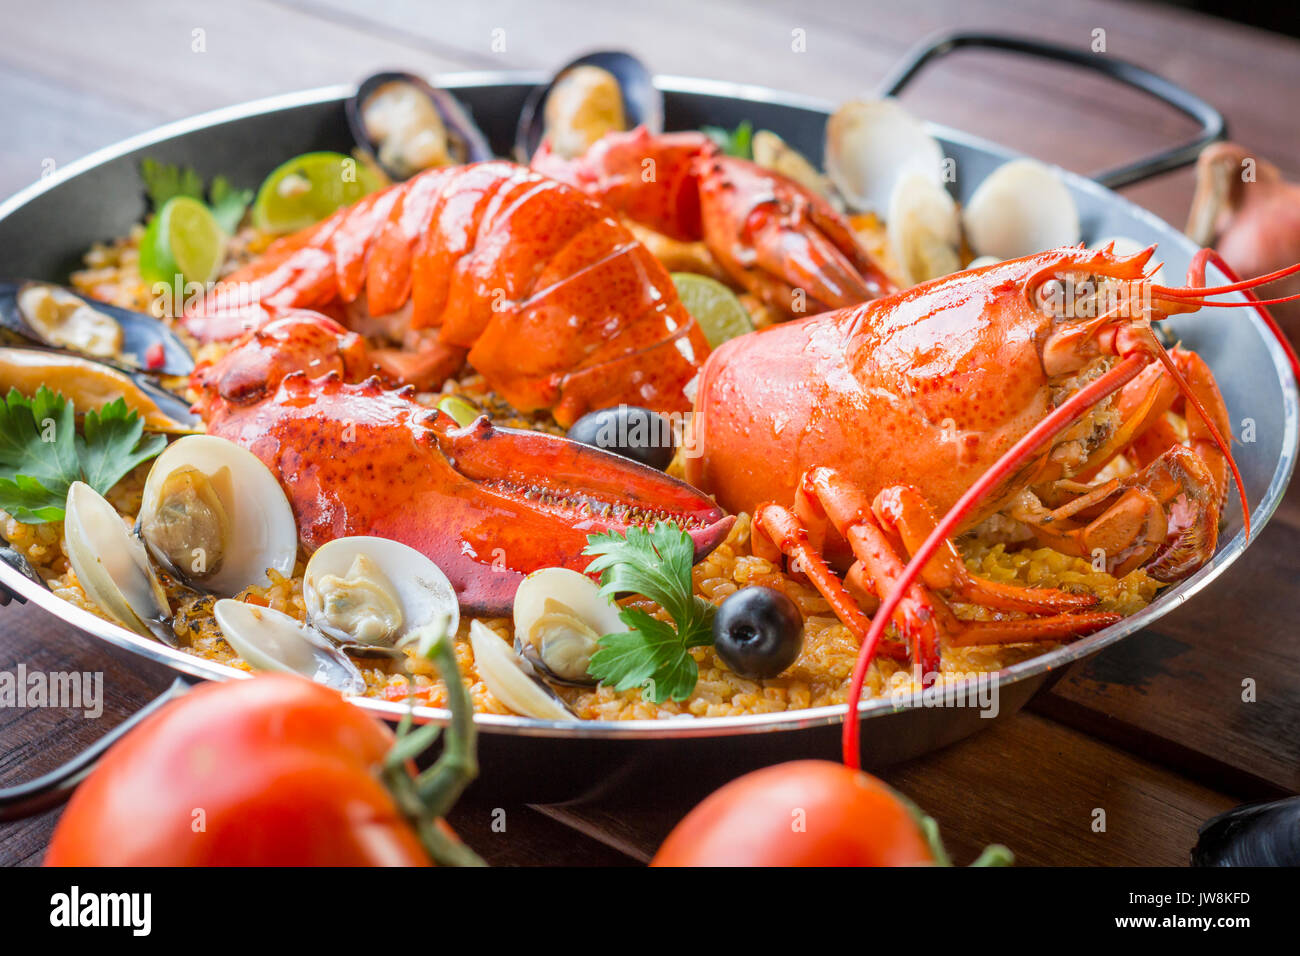 Gourmet seafood Valencia paella with fresh langoustine, clams, mussels and squid on savory saffron rice with peas and lemon slices, close up view - Stock Image